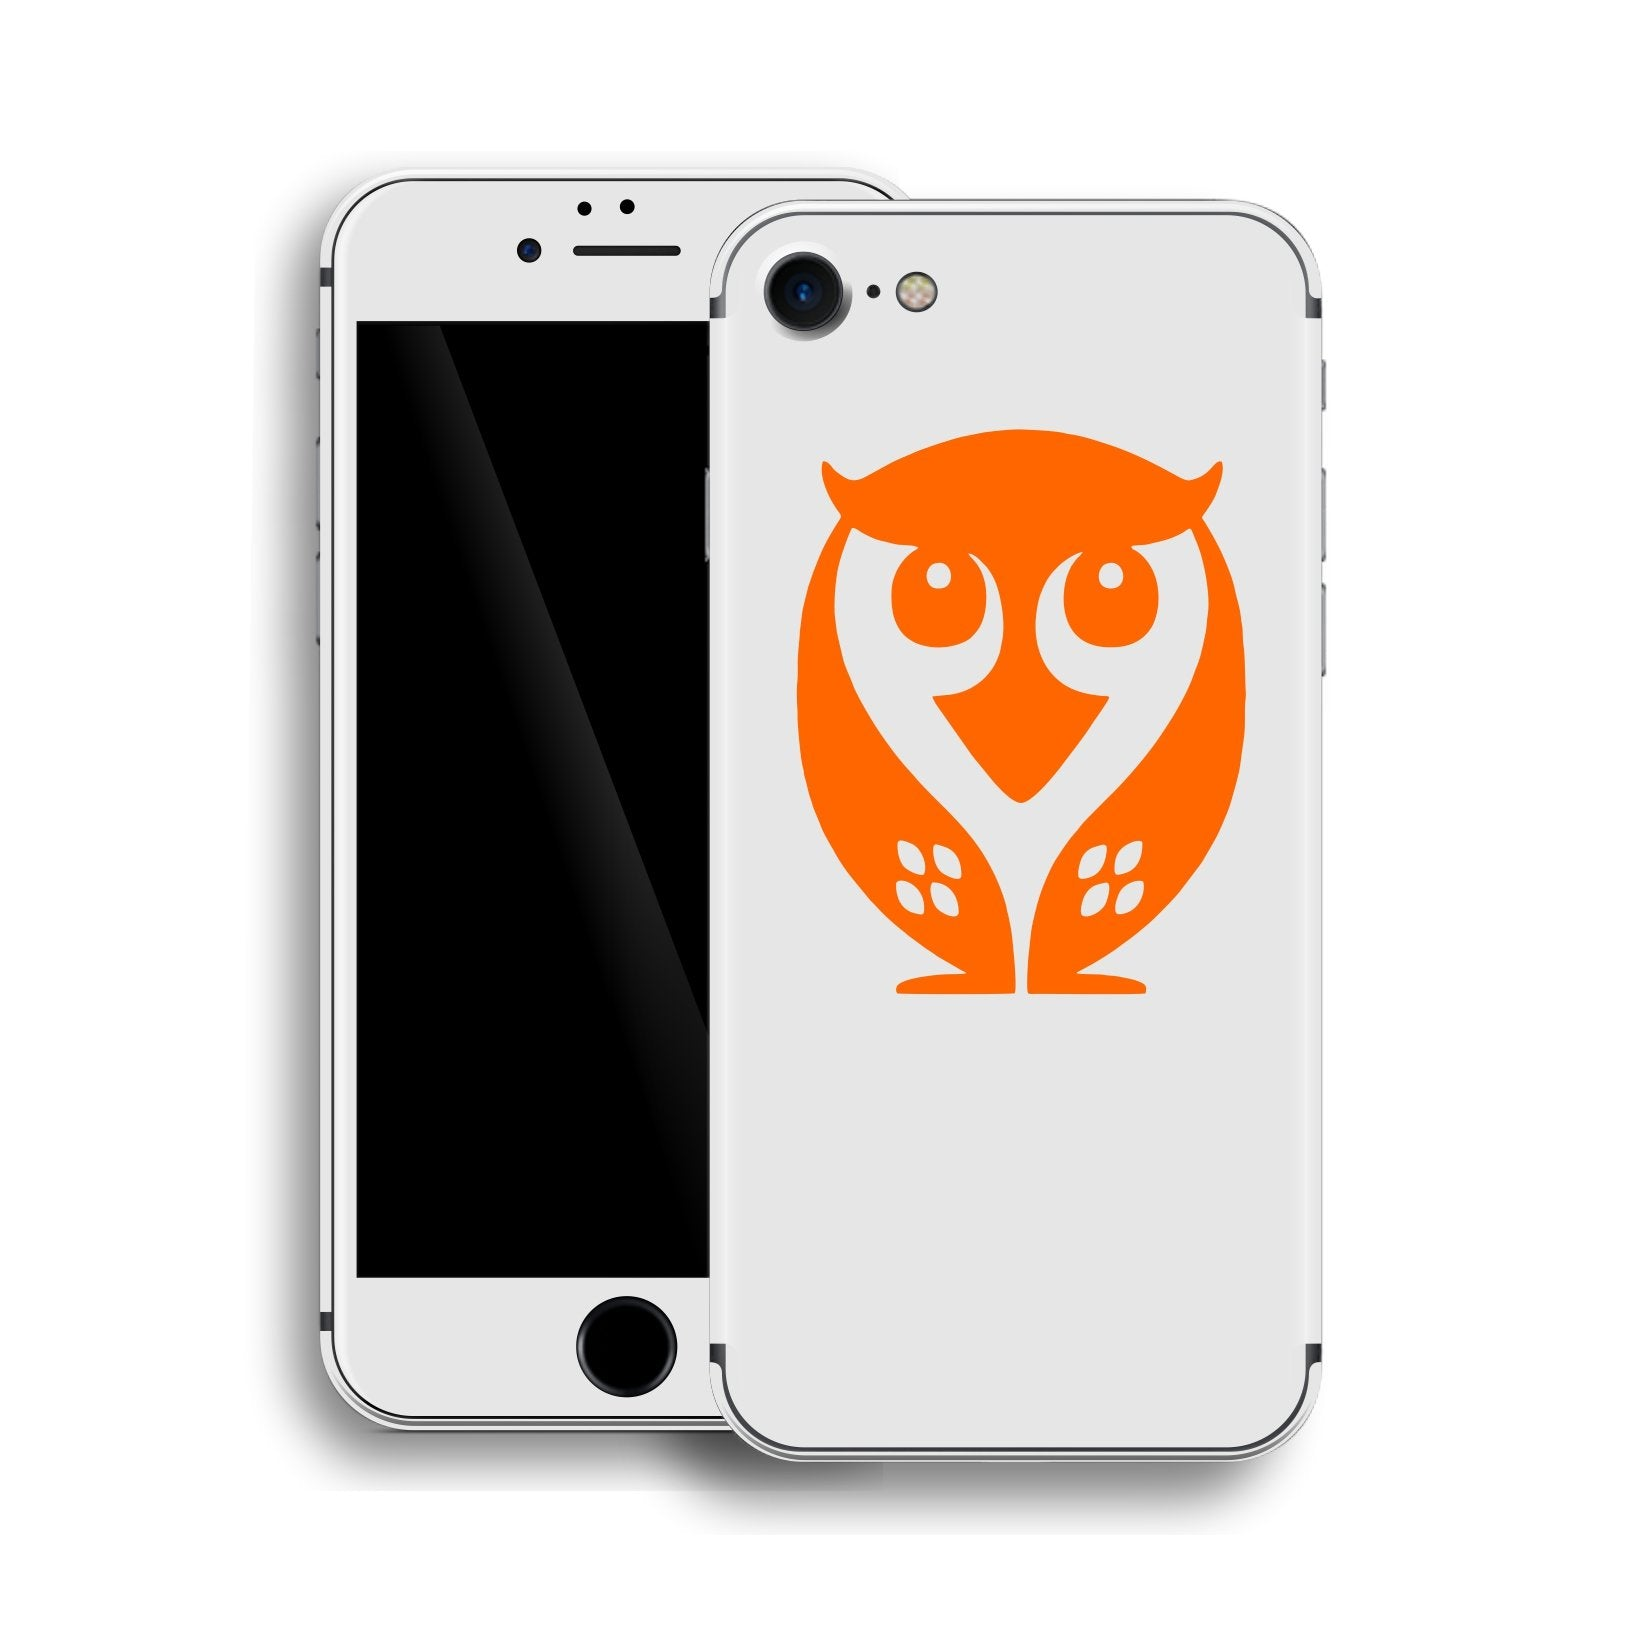 iPhone 8 Owl Custom Design Edition Skin Wrap Decal Protector Cover | EasySkinz